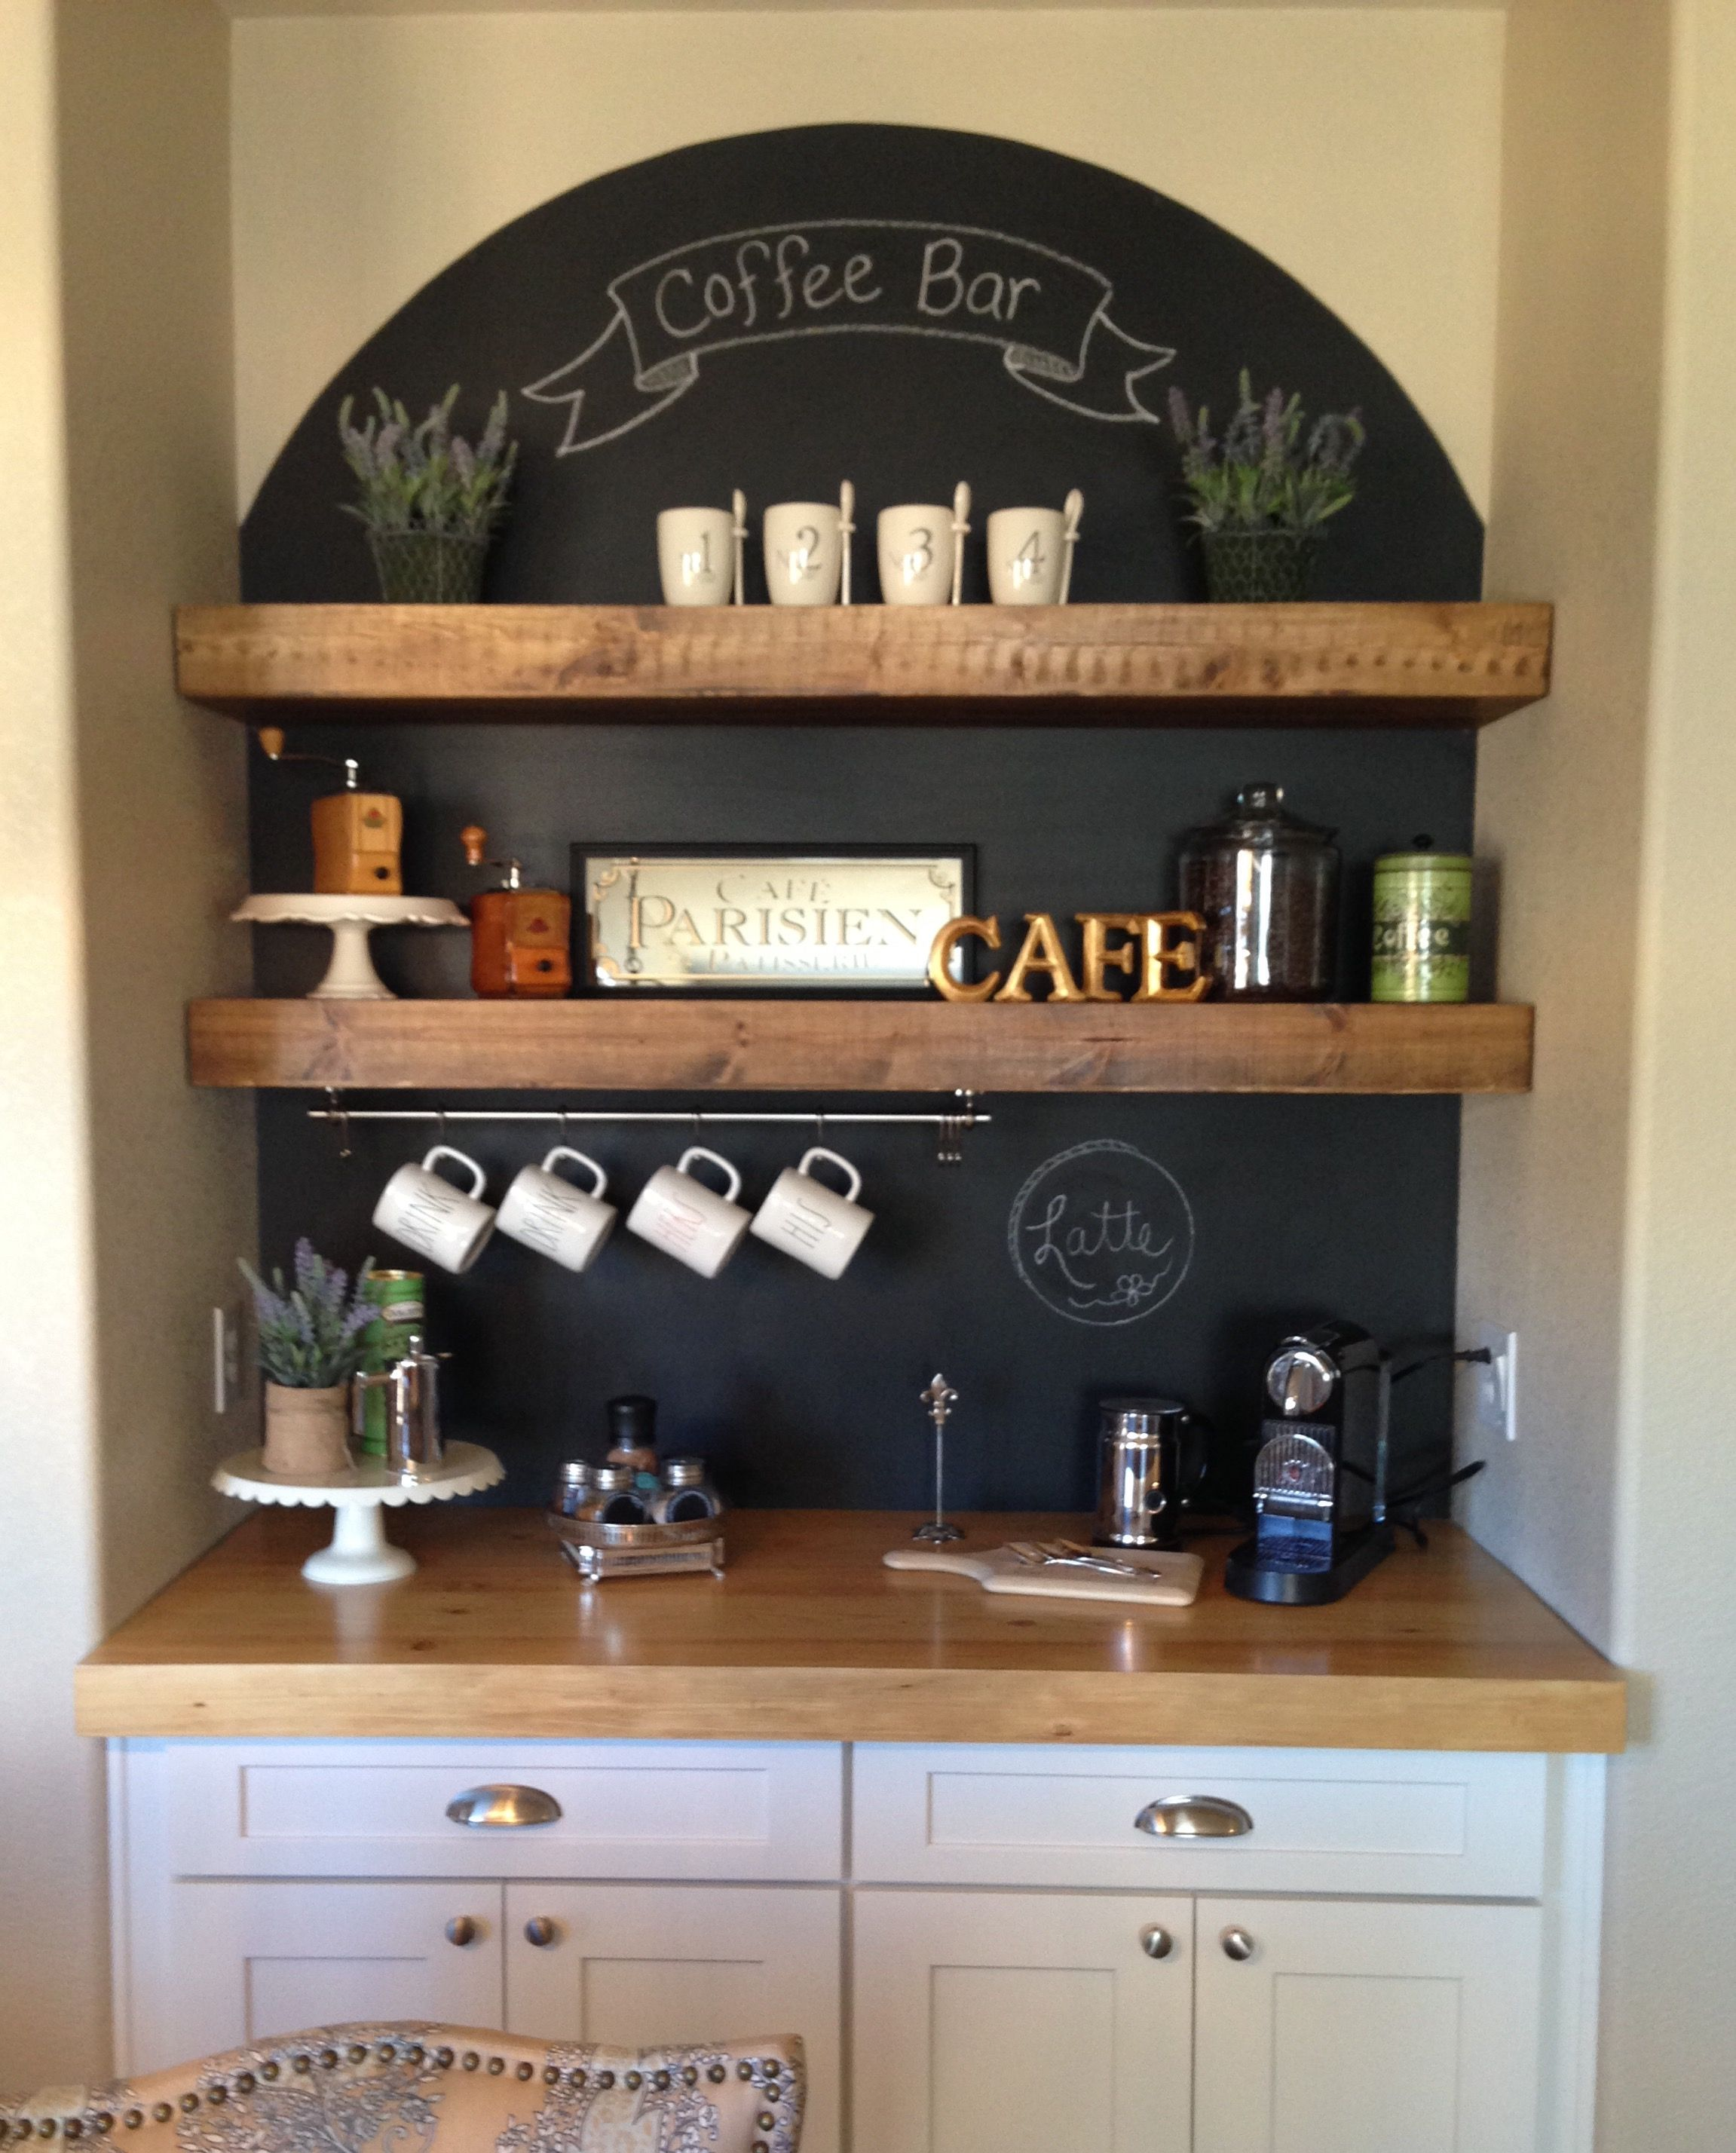 Home Coffee Bar Design Ideas: Here's My Coffee Bar Inspired By Joanna On The Fixer Upper